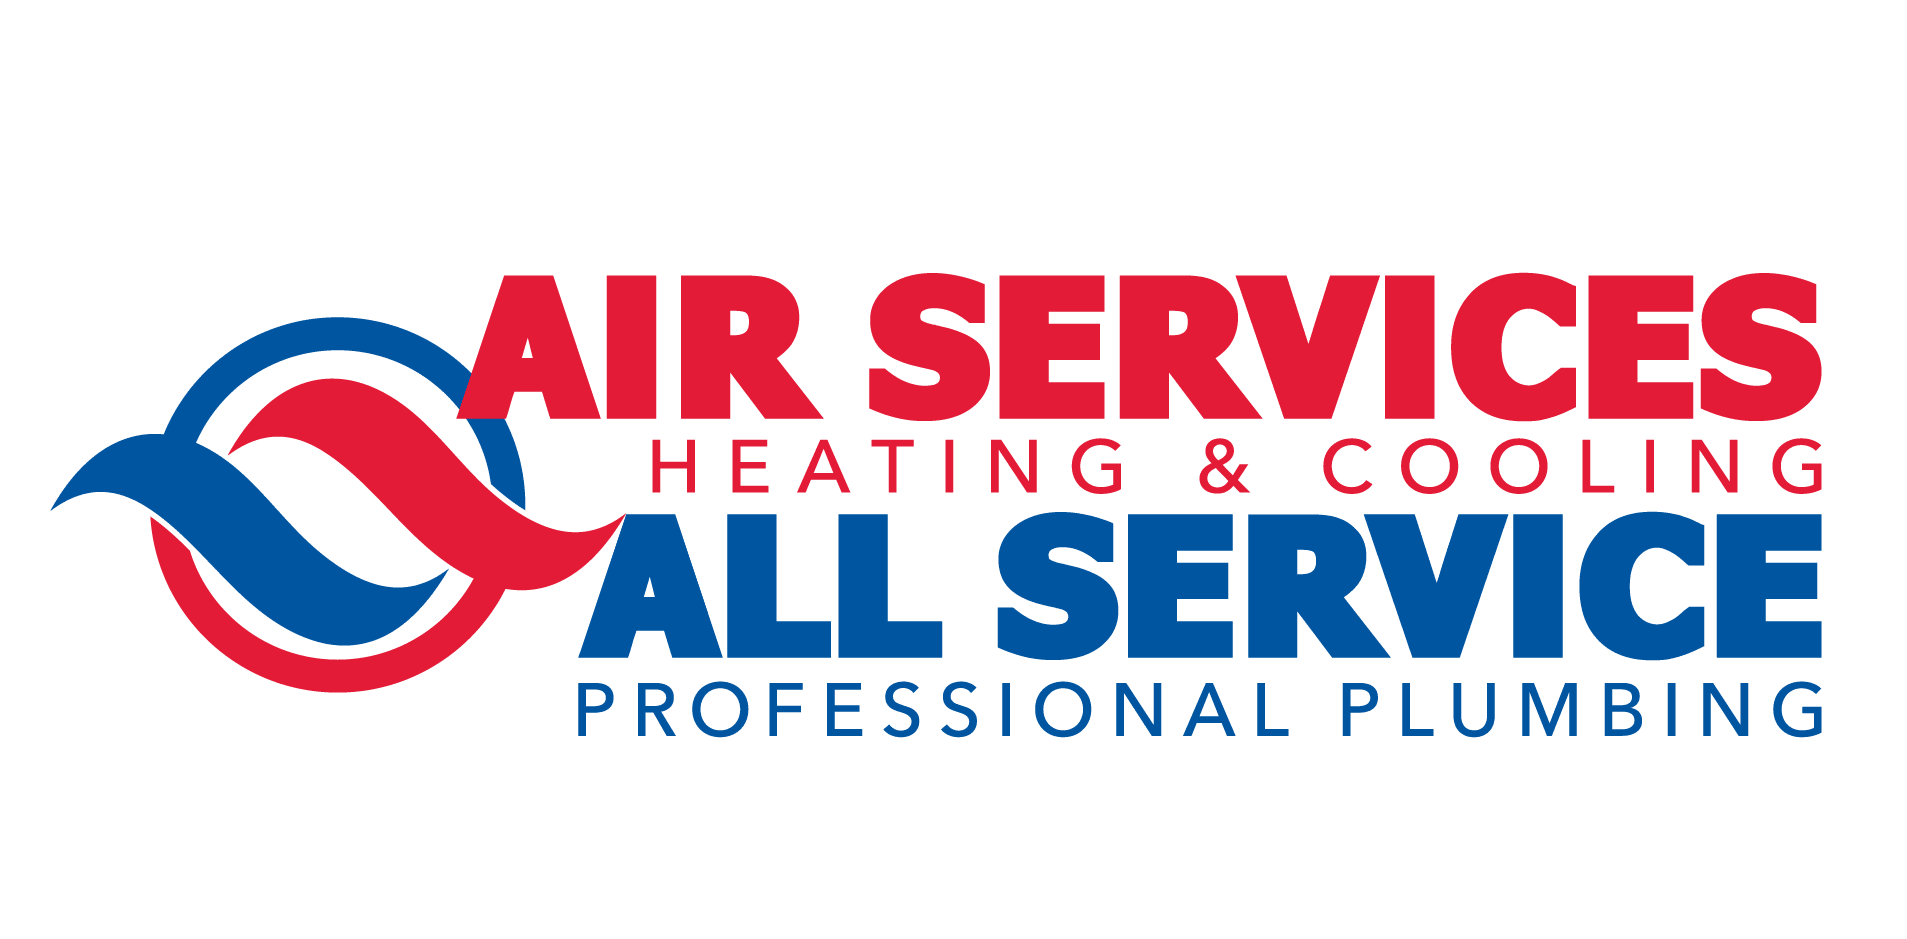 Air-Services-Transparent-Background-w1907.png